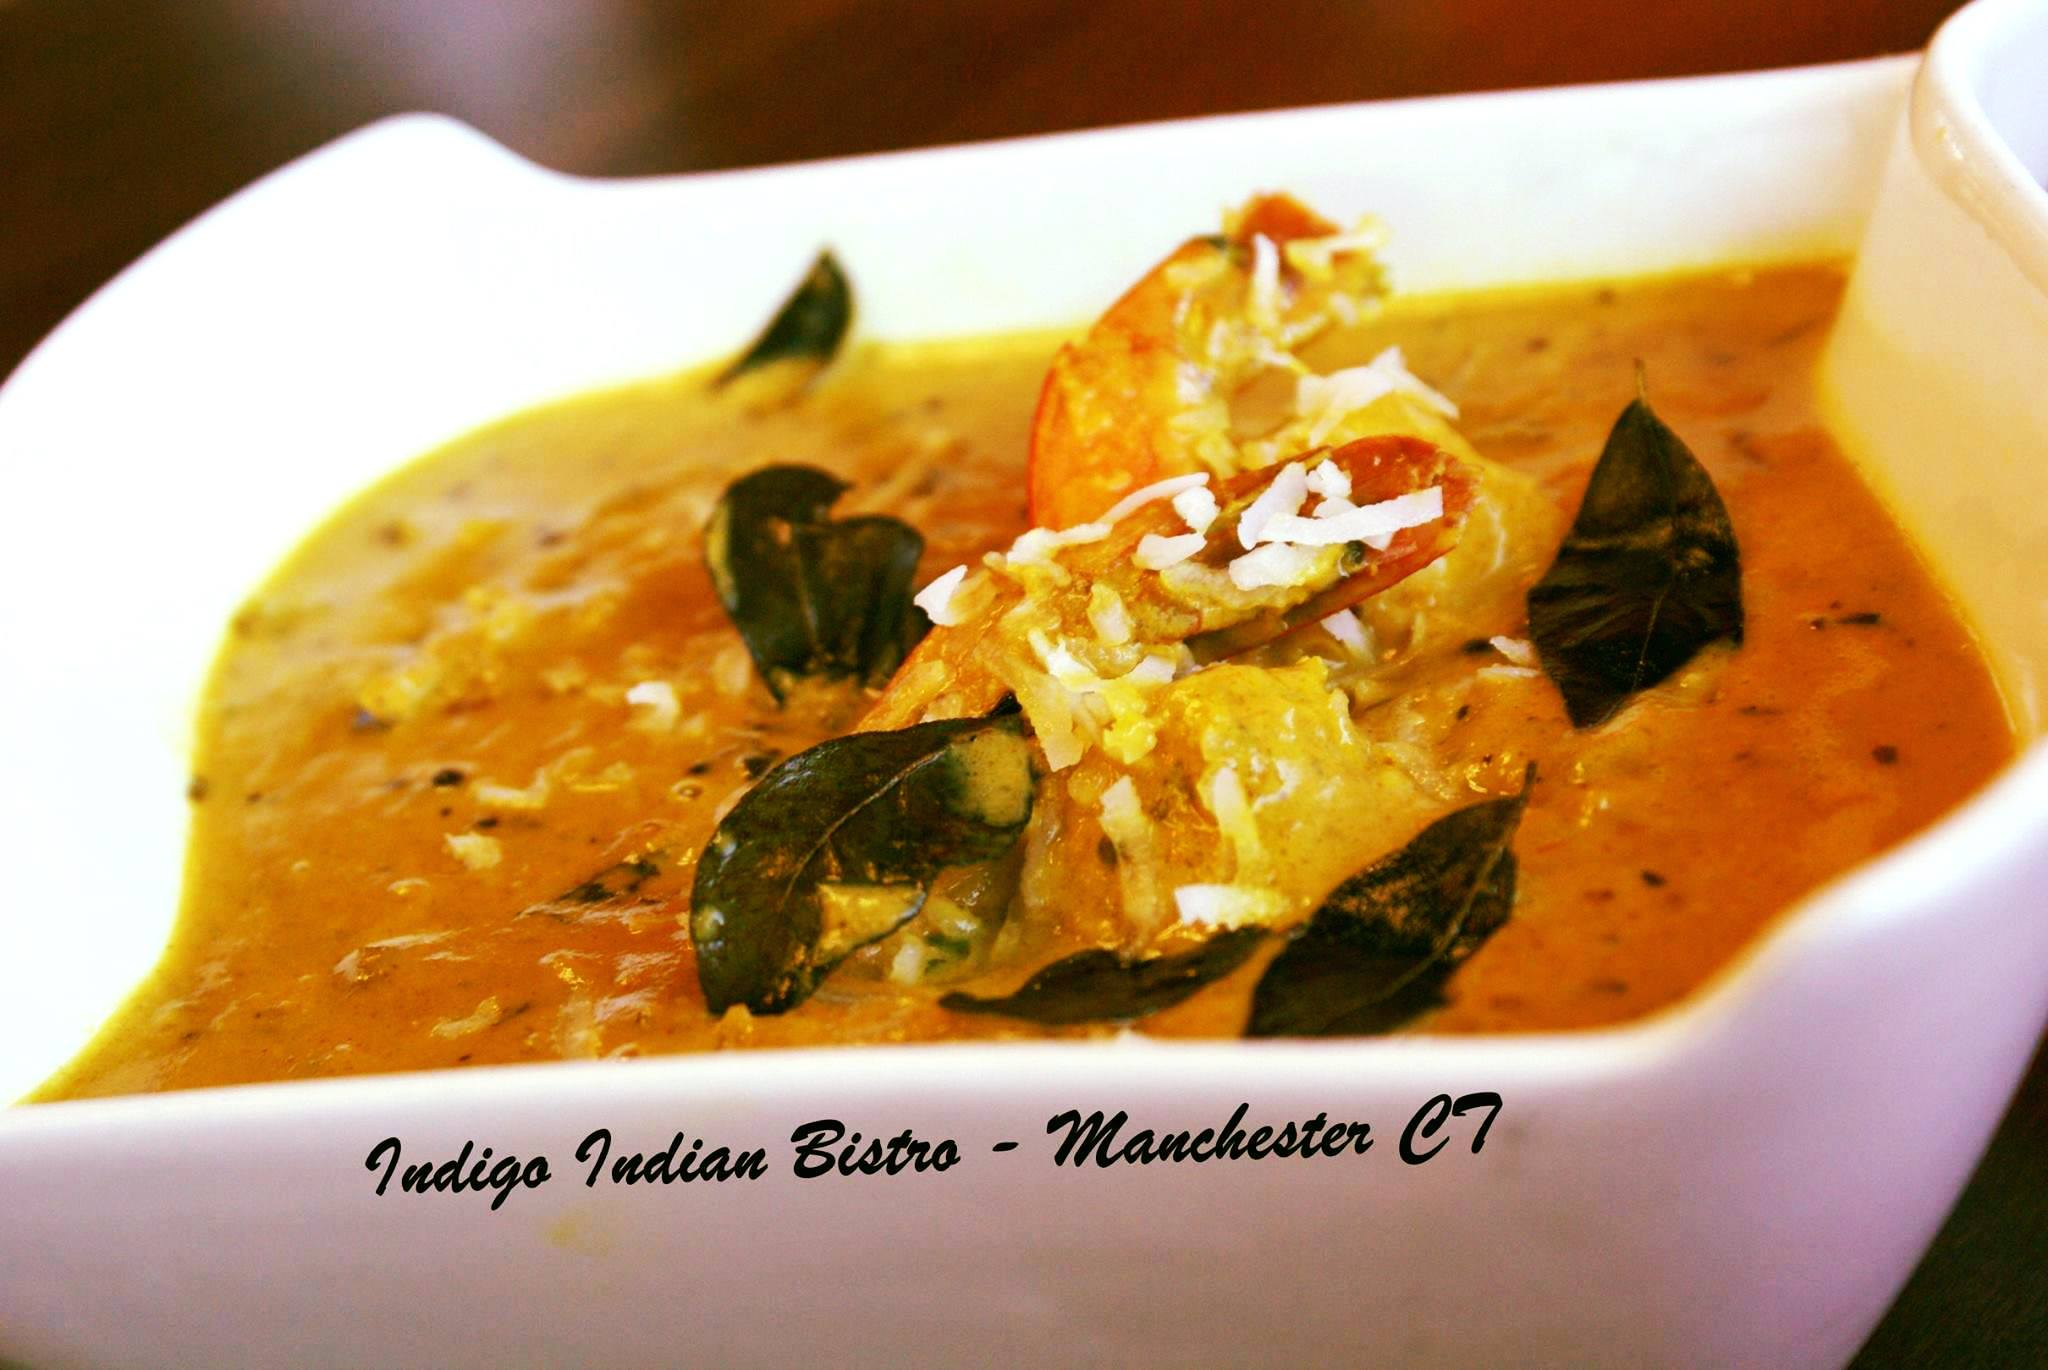 Seafood - Chingiri Macher Curry